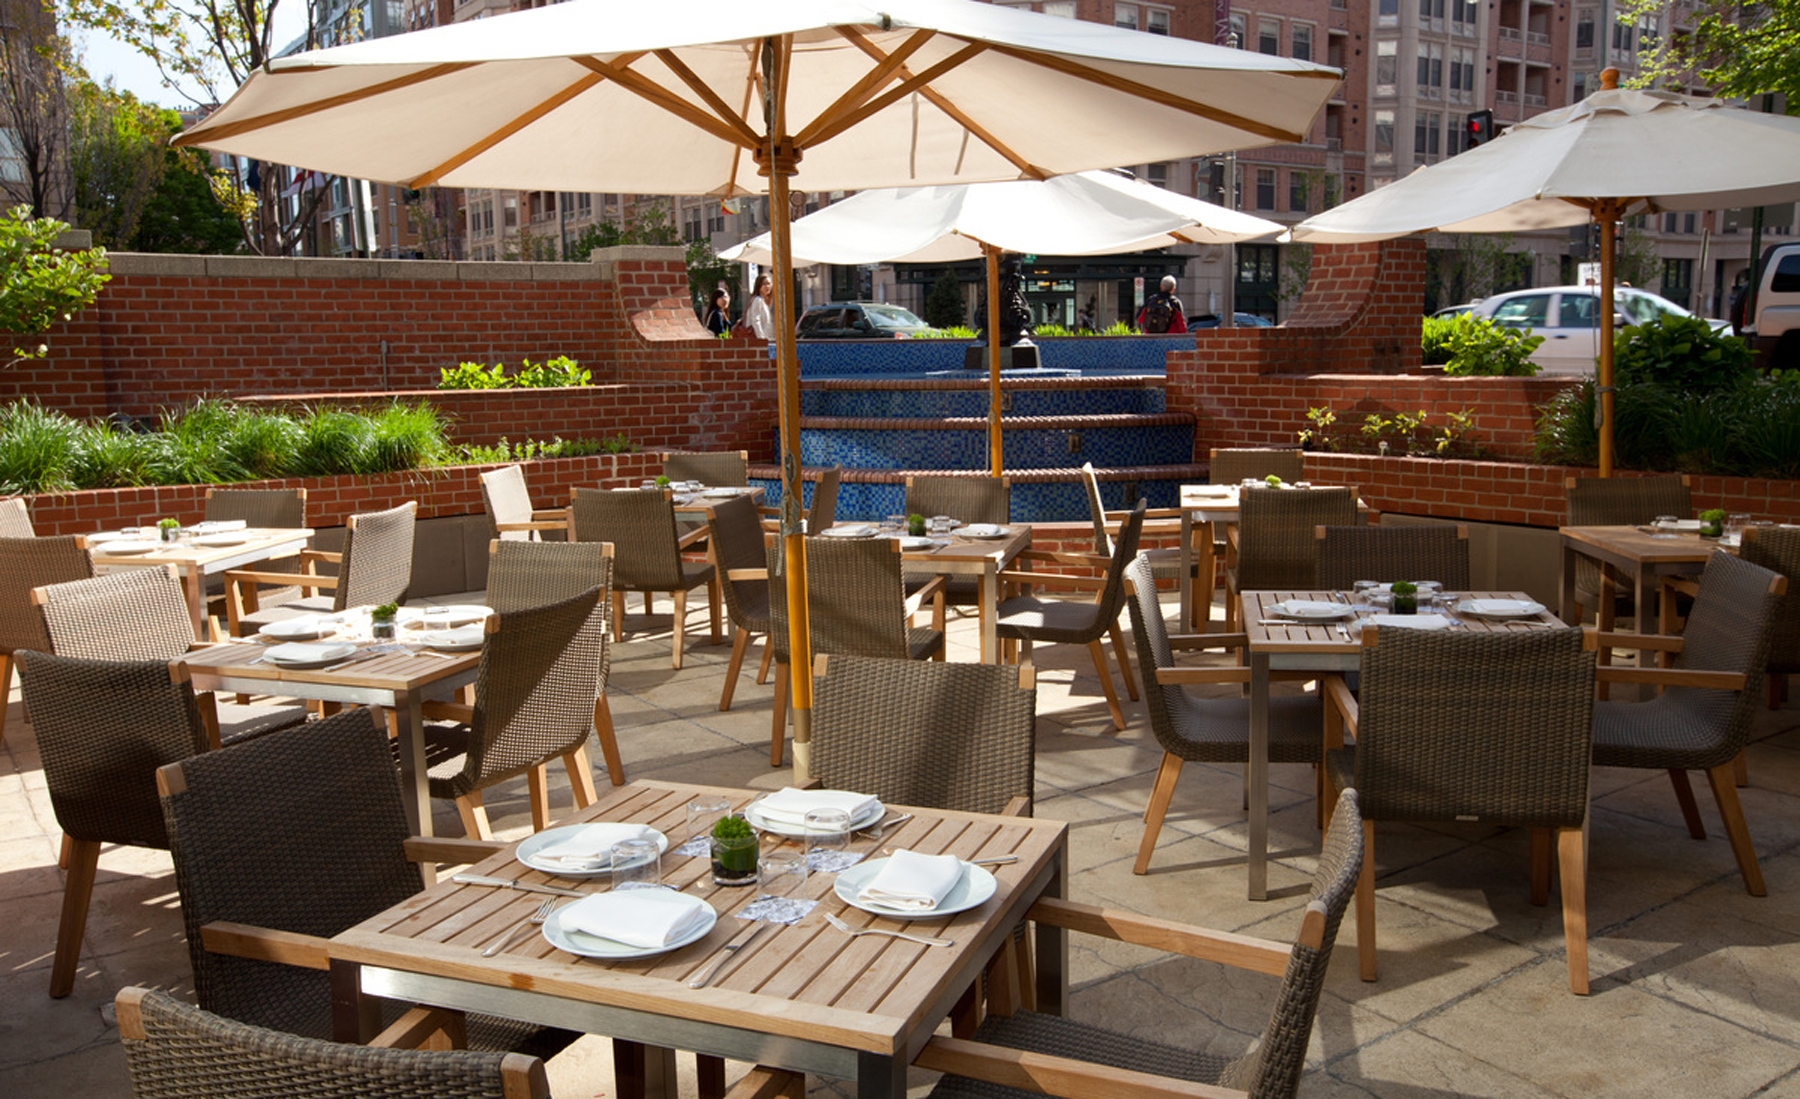 Hotels Reimagine Food And Beverage Service With New Models